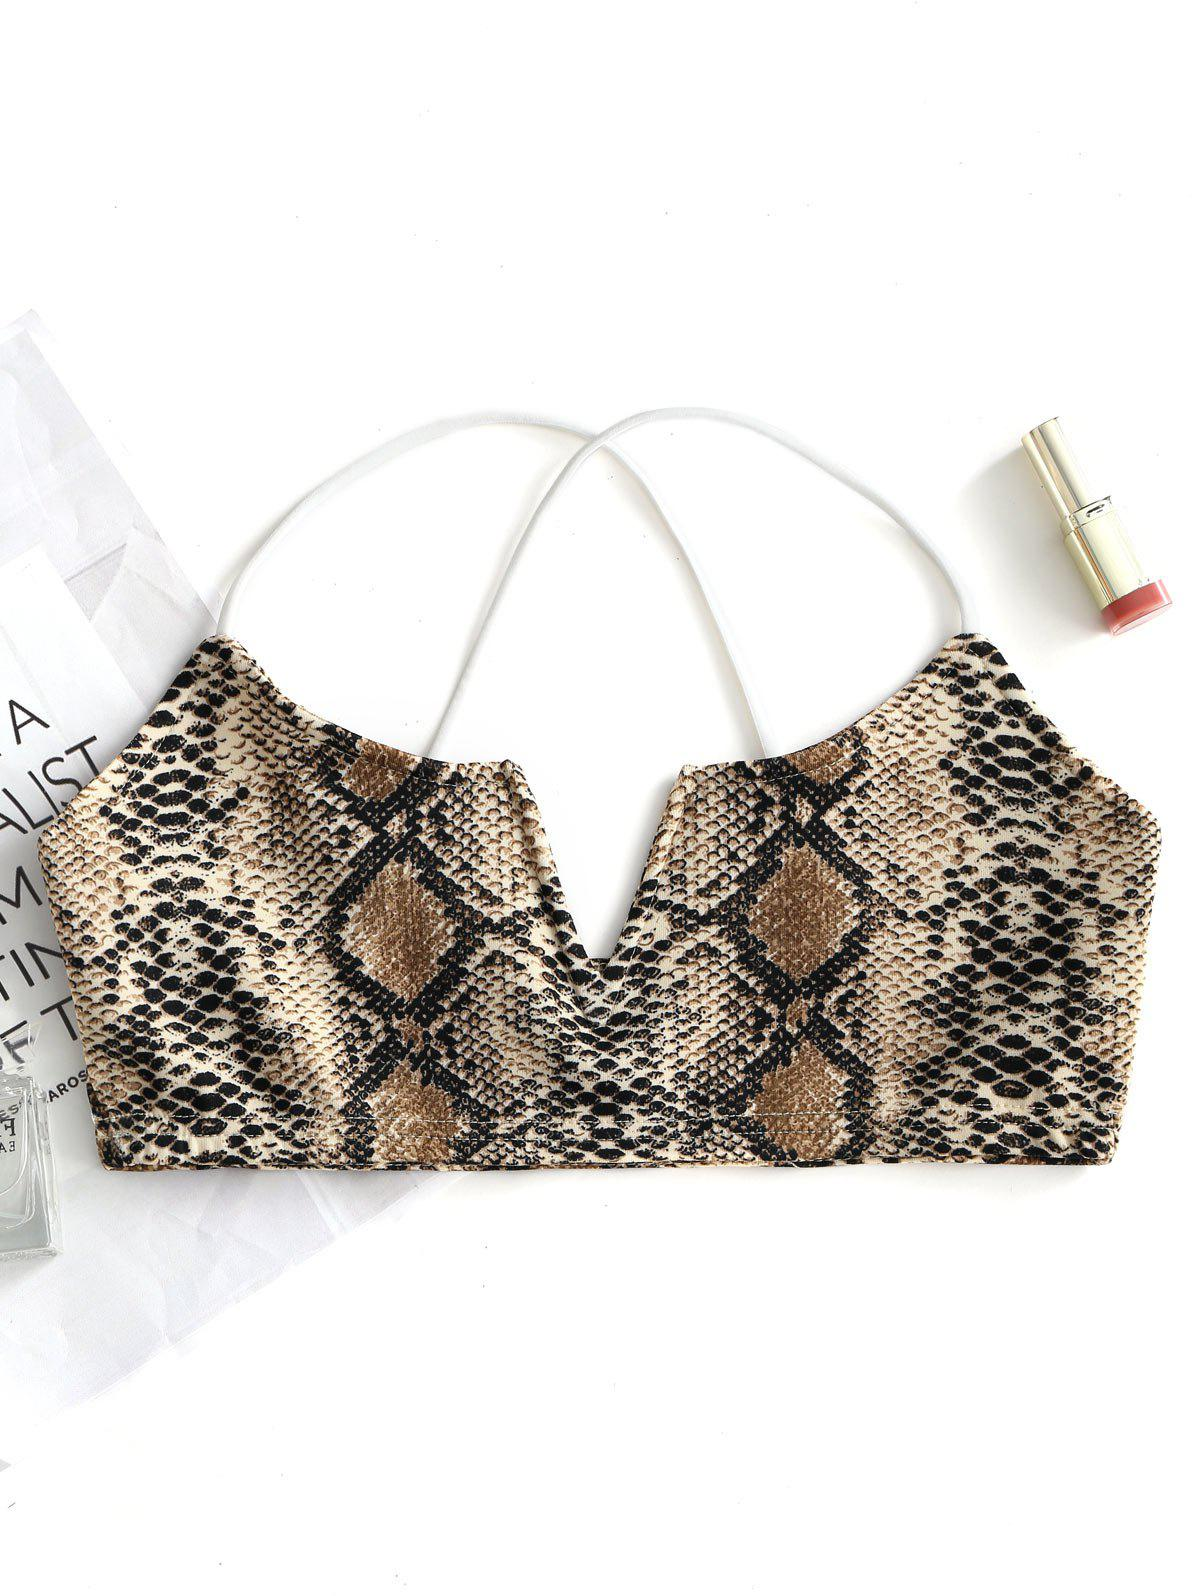 Best Valentine Serpentine Print Bra Outfits